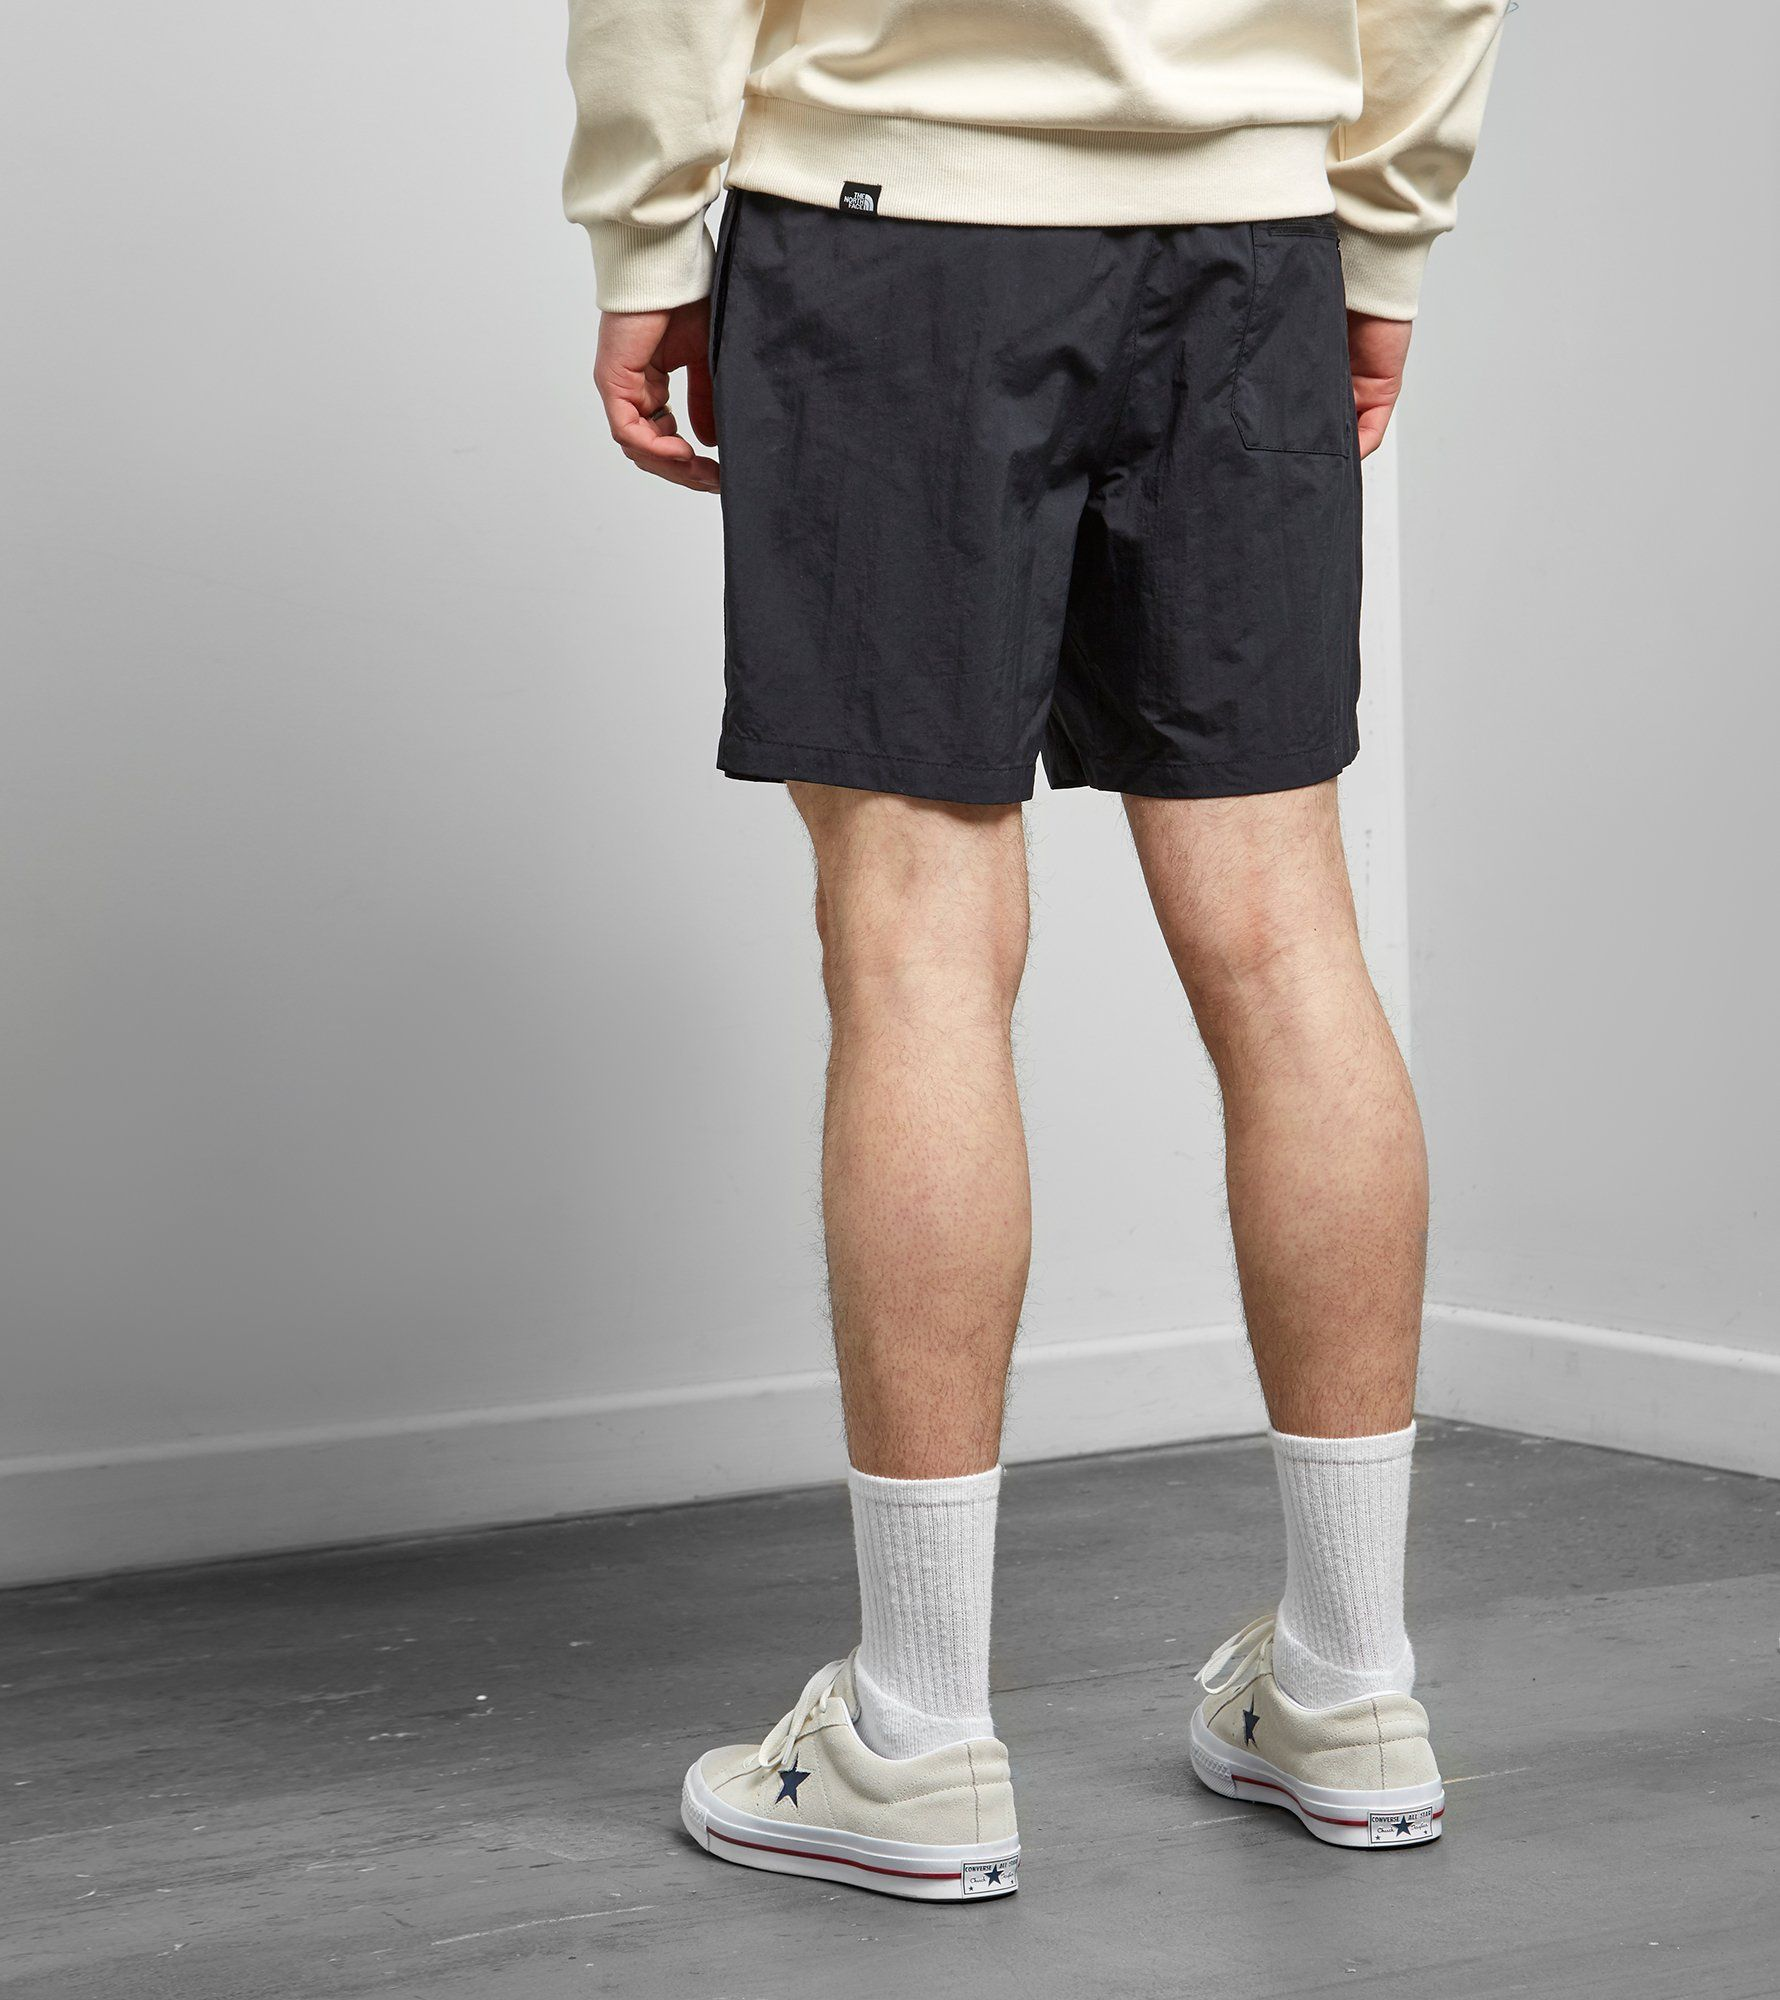 Columbia Shorts - size? Exclusive